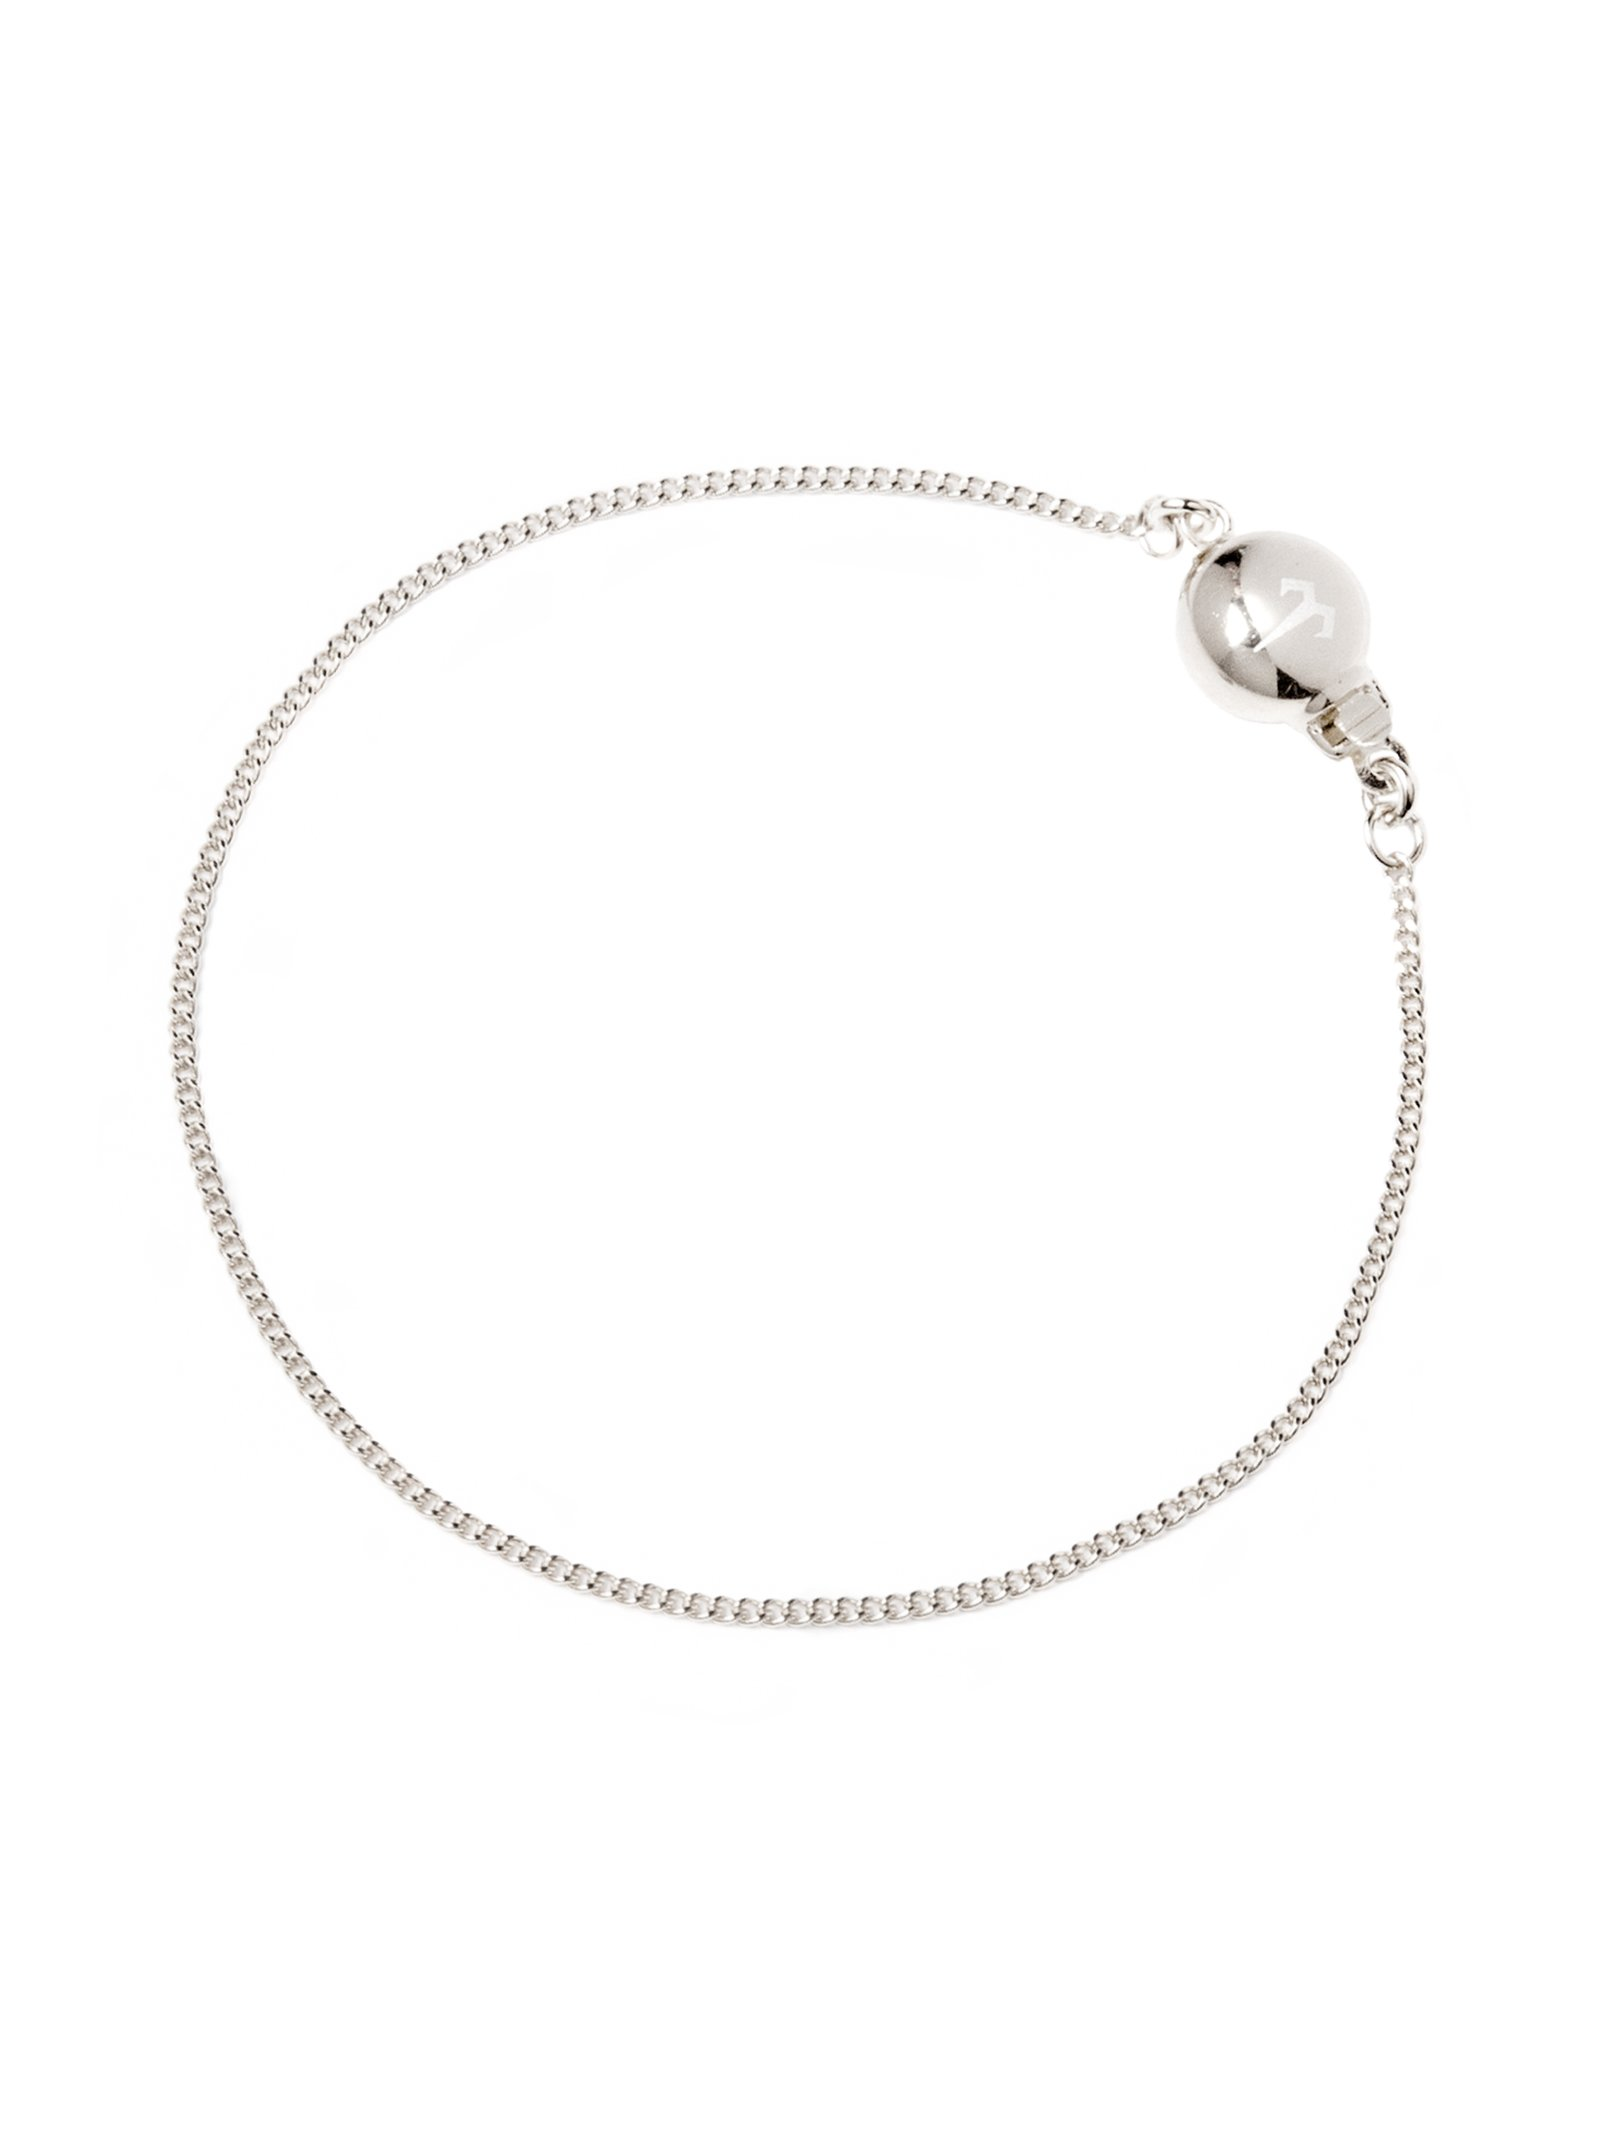 Ternary London DEEP ILLUSION STERLING SILVER CHAIN BRACELET